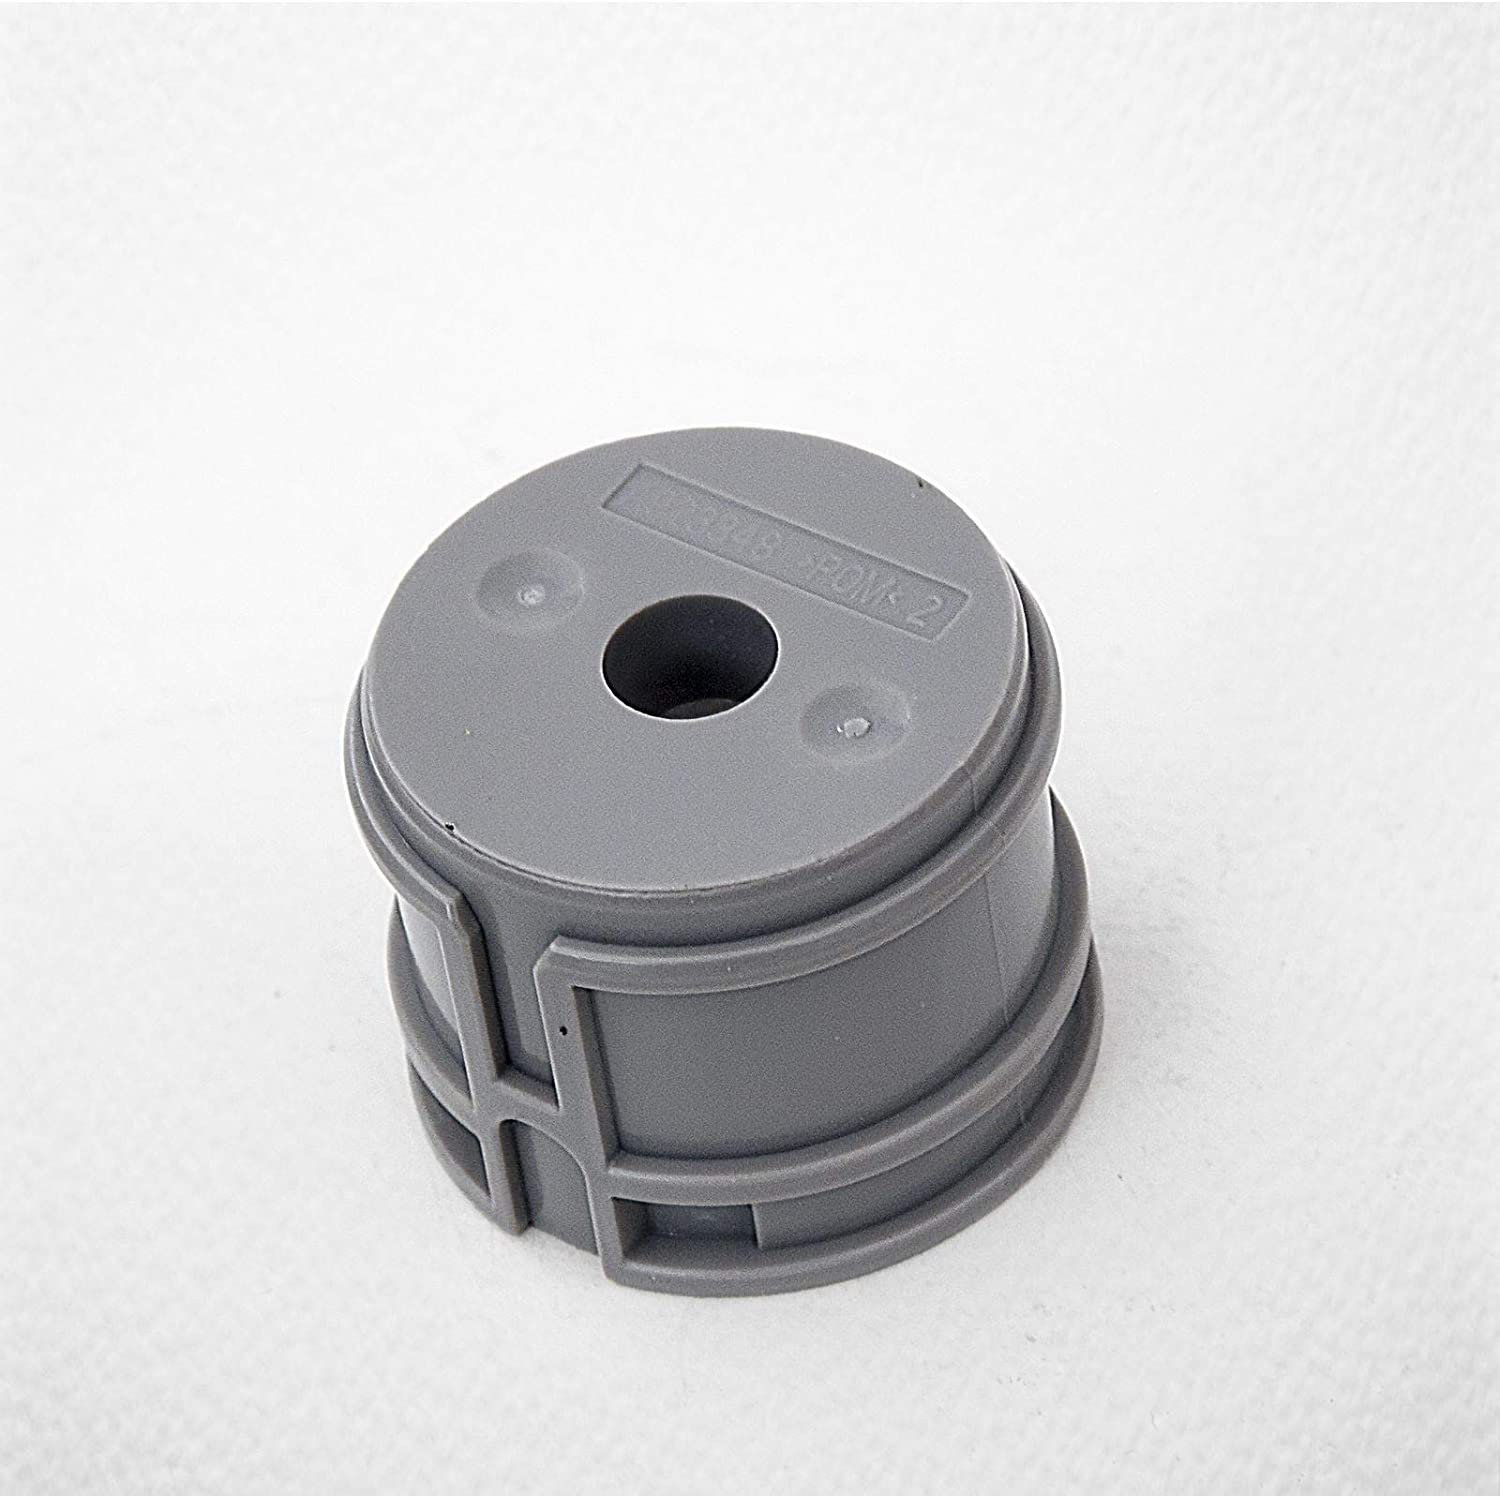 Ideal Max 70% OFF Standard low-pricing A923348 Volume control handle carrier